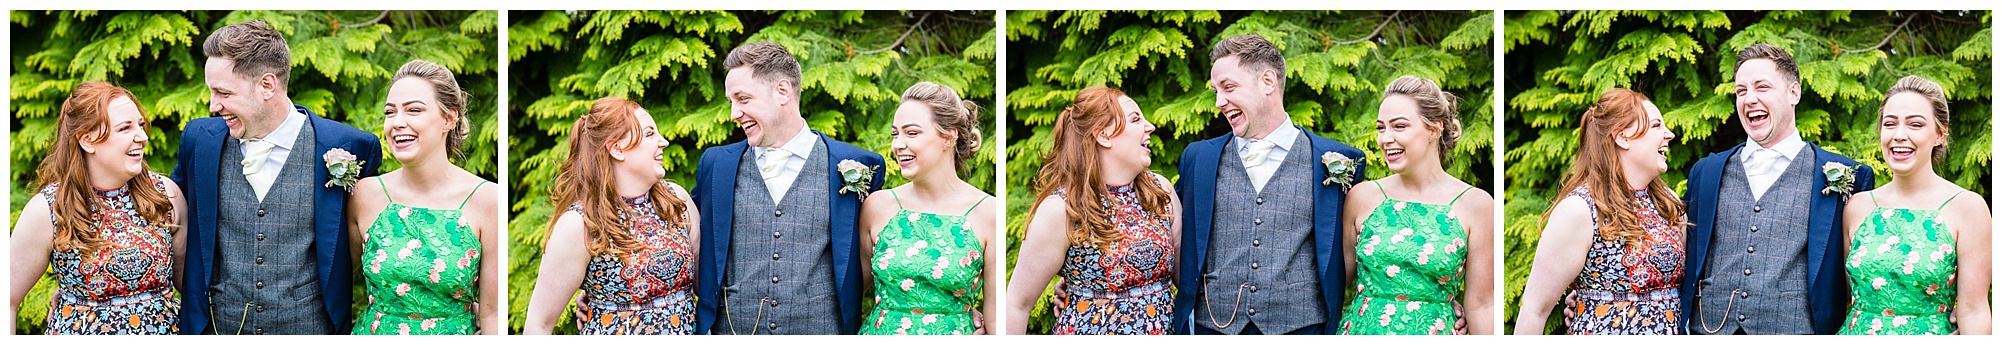 groom with sisters laughing out loud - shropshire wedding photographer